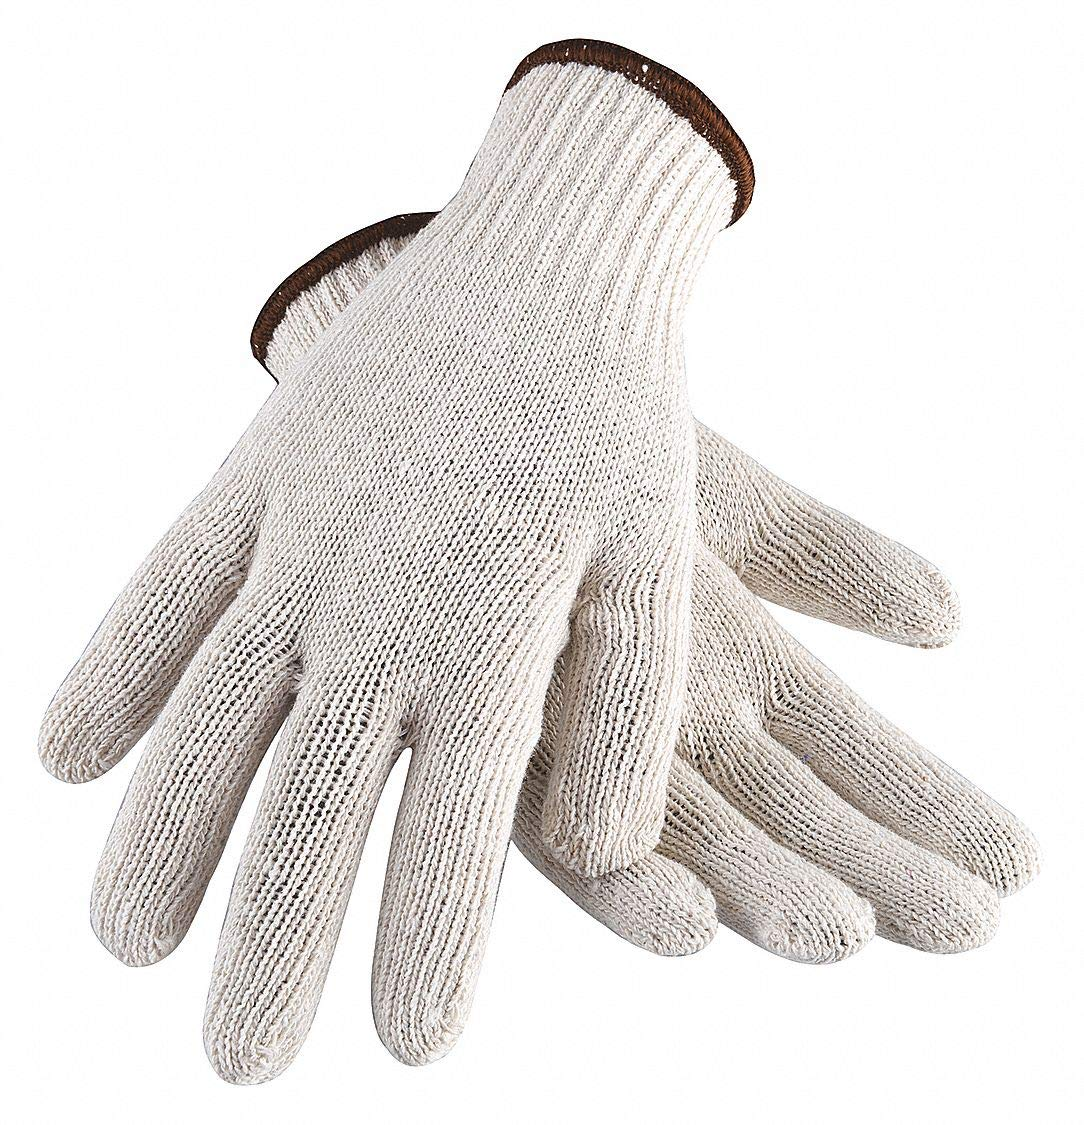 CONDOR Natural String Knit Gloves White Large Standard Weight Cotton//Polyester